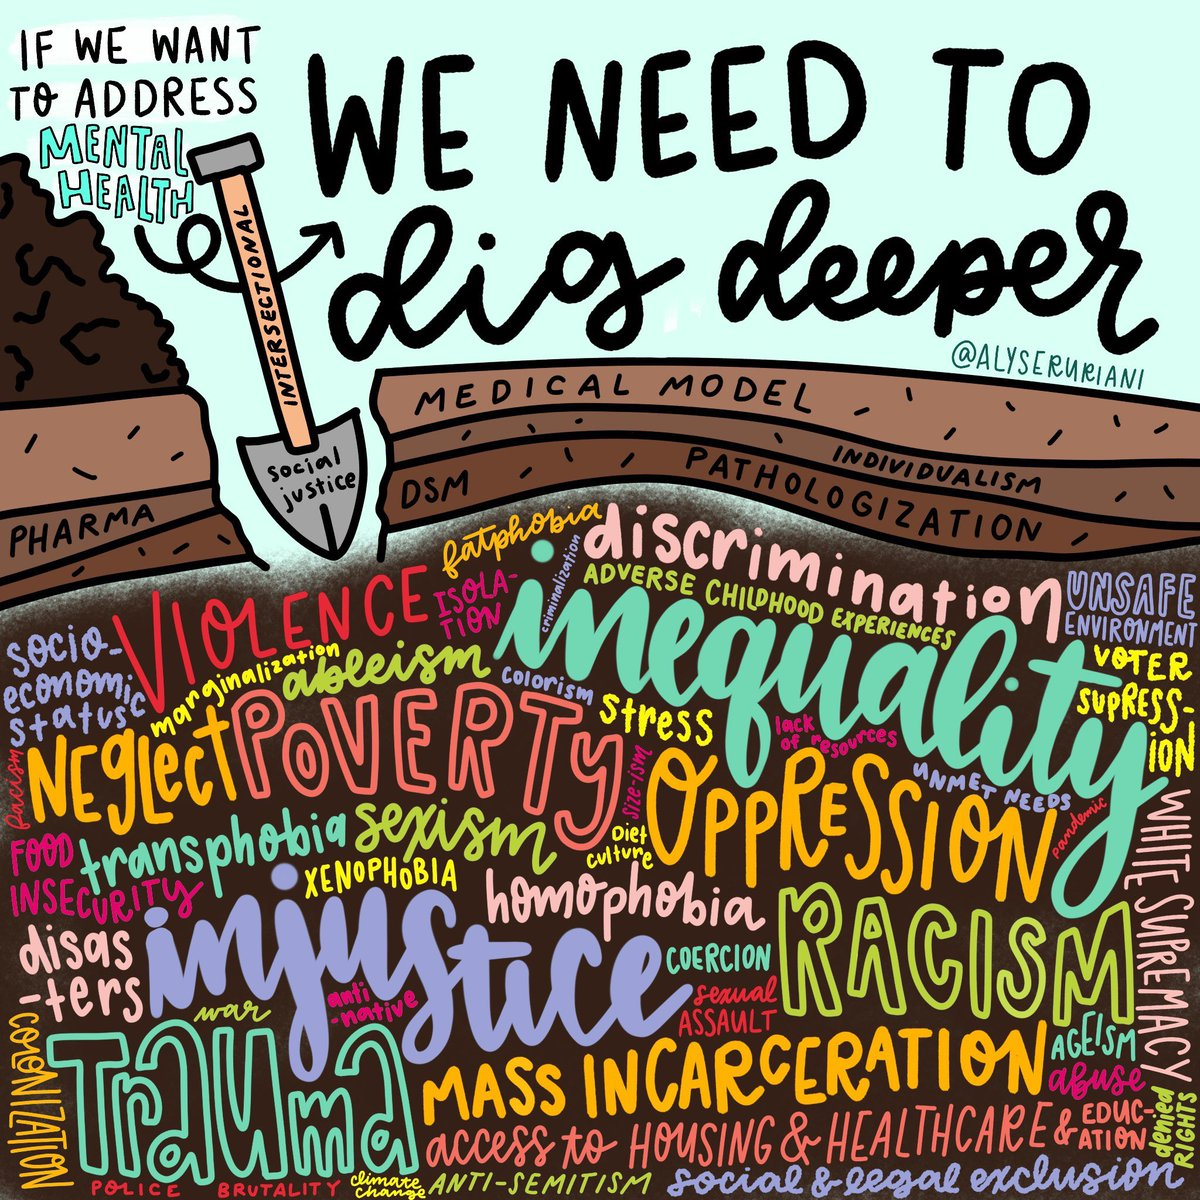 Now more than ever, we need to dig deeper to address mental health. Thank you @esylarur for an excellent visual.